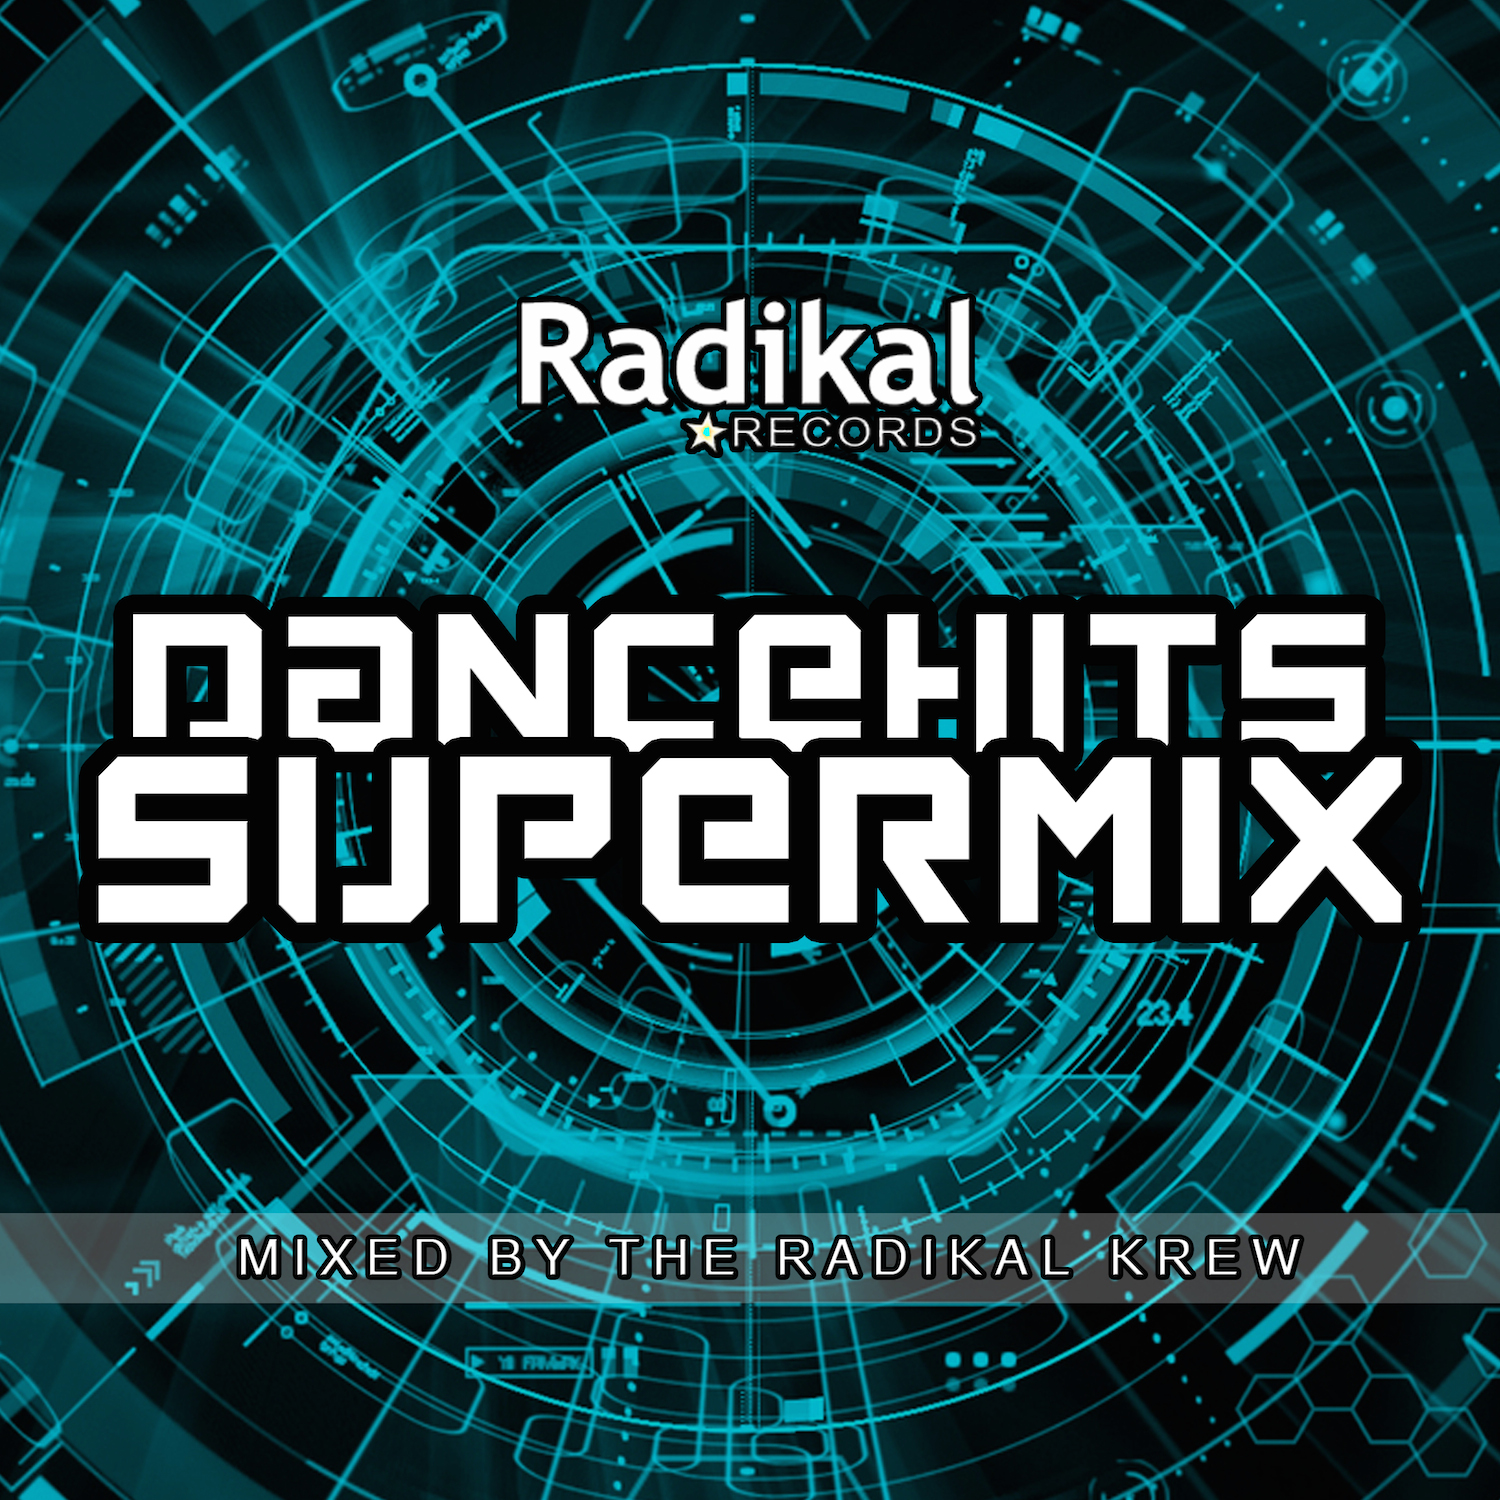 Protected: DanceHits Supermix Mixed By The Radikal Krew